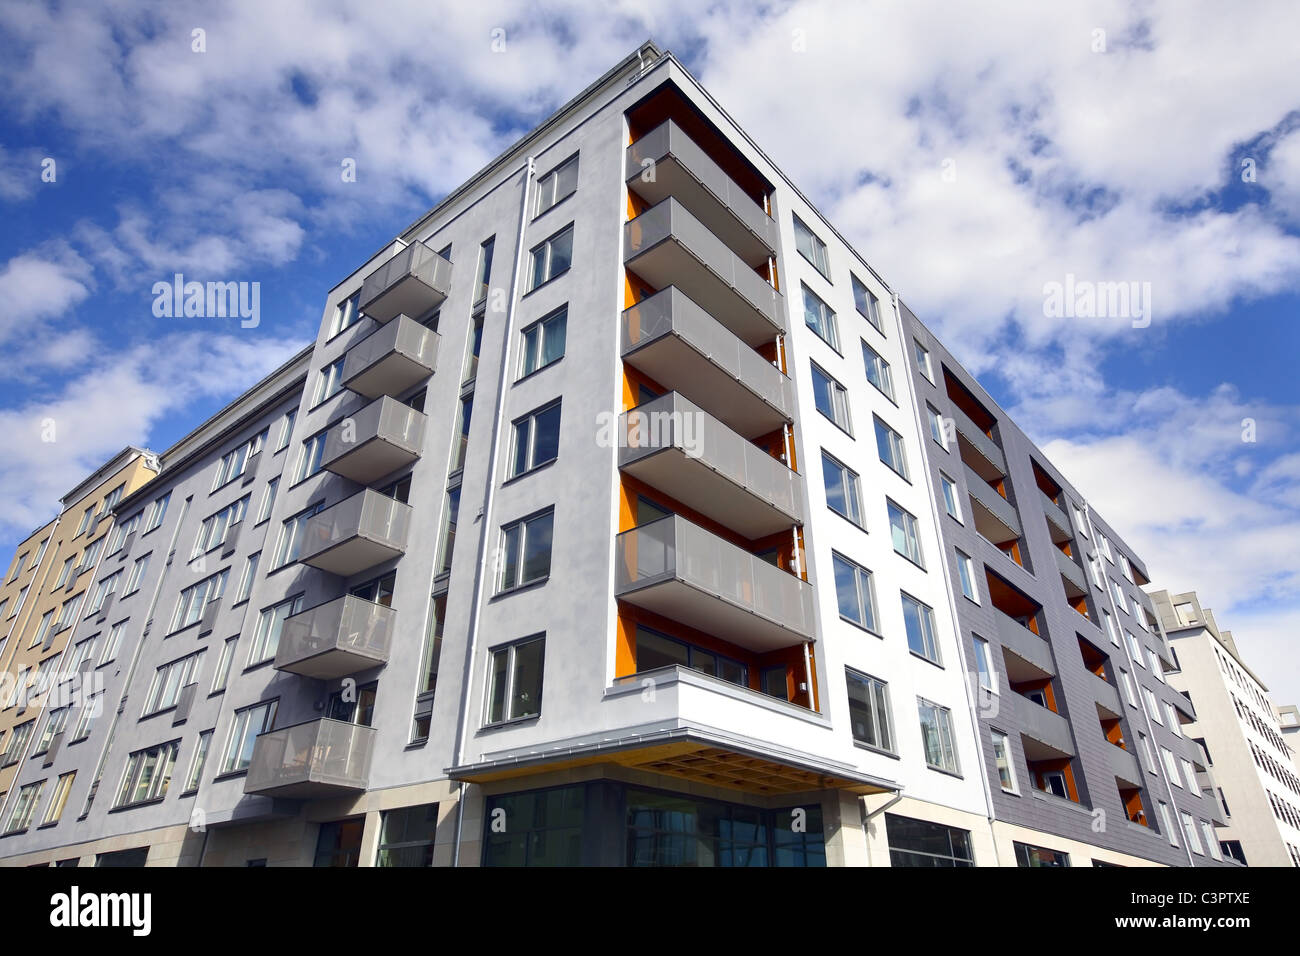 Apartment building in Sweden - Stock Image